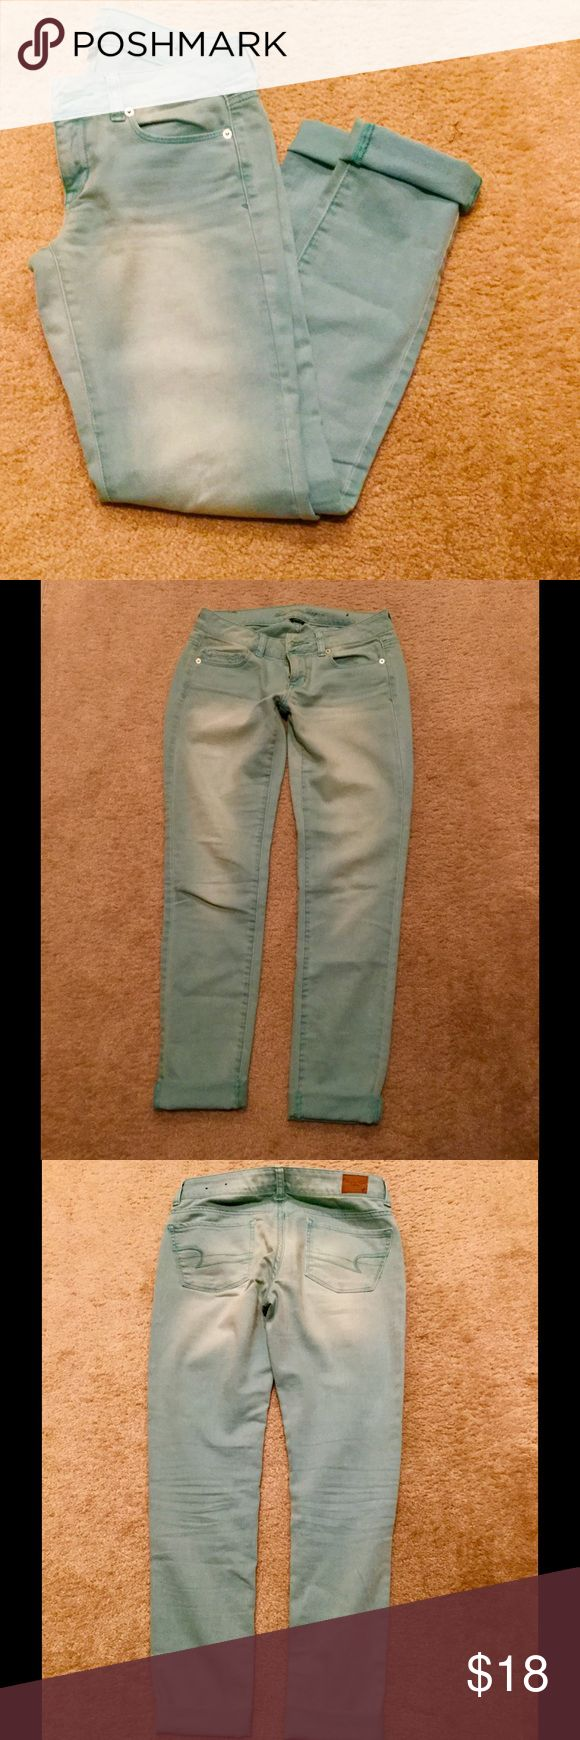 American Eagle Teal Skinny Jeans Size 4 Teal skinny jeans with factory fading, EUC (wore no more than 2 times) American Eagle Outfitters Jeans Skinny